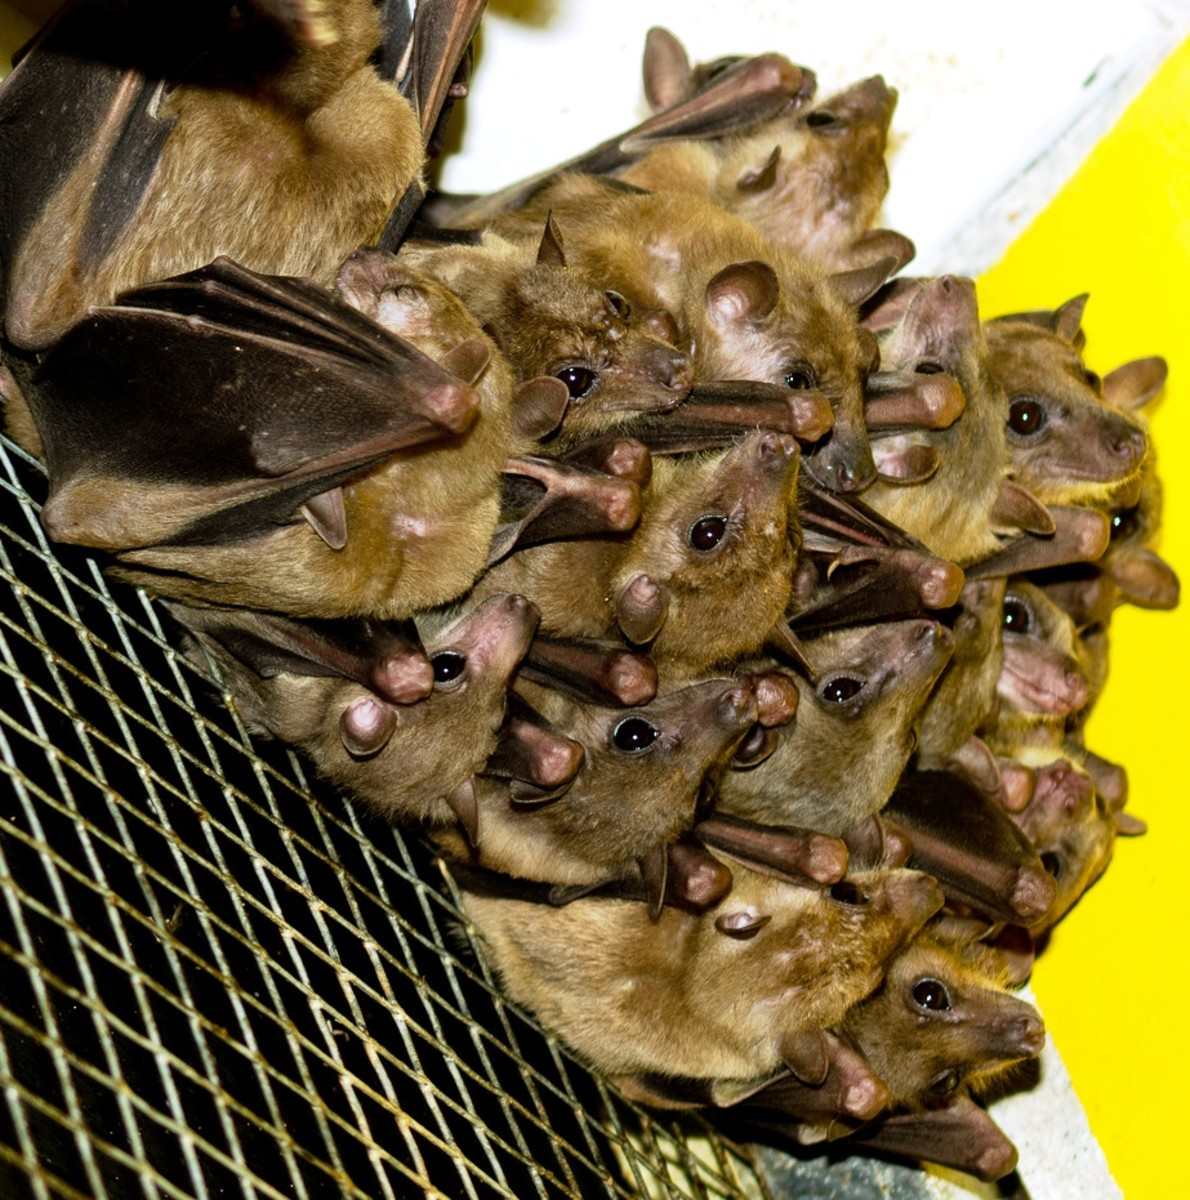 Baby bats often cluster together like a bunch of grapes to stay warm.  Bats live, raise their young, and hunt in groups.  They prefer  spaces that are hot, dry, and dark. Attic vacancy?